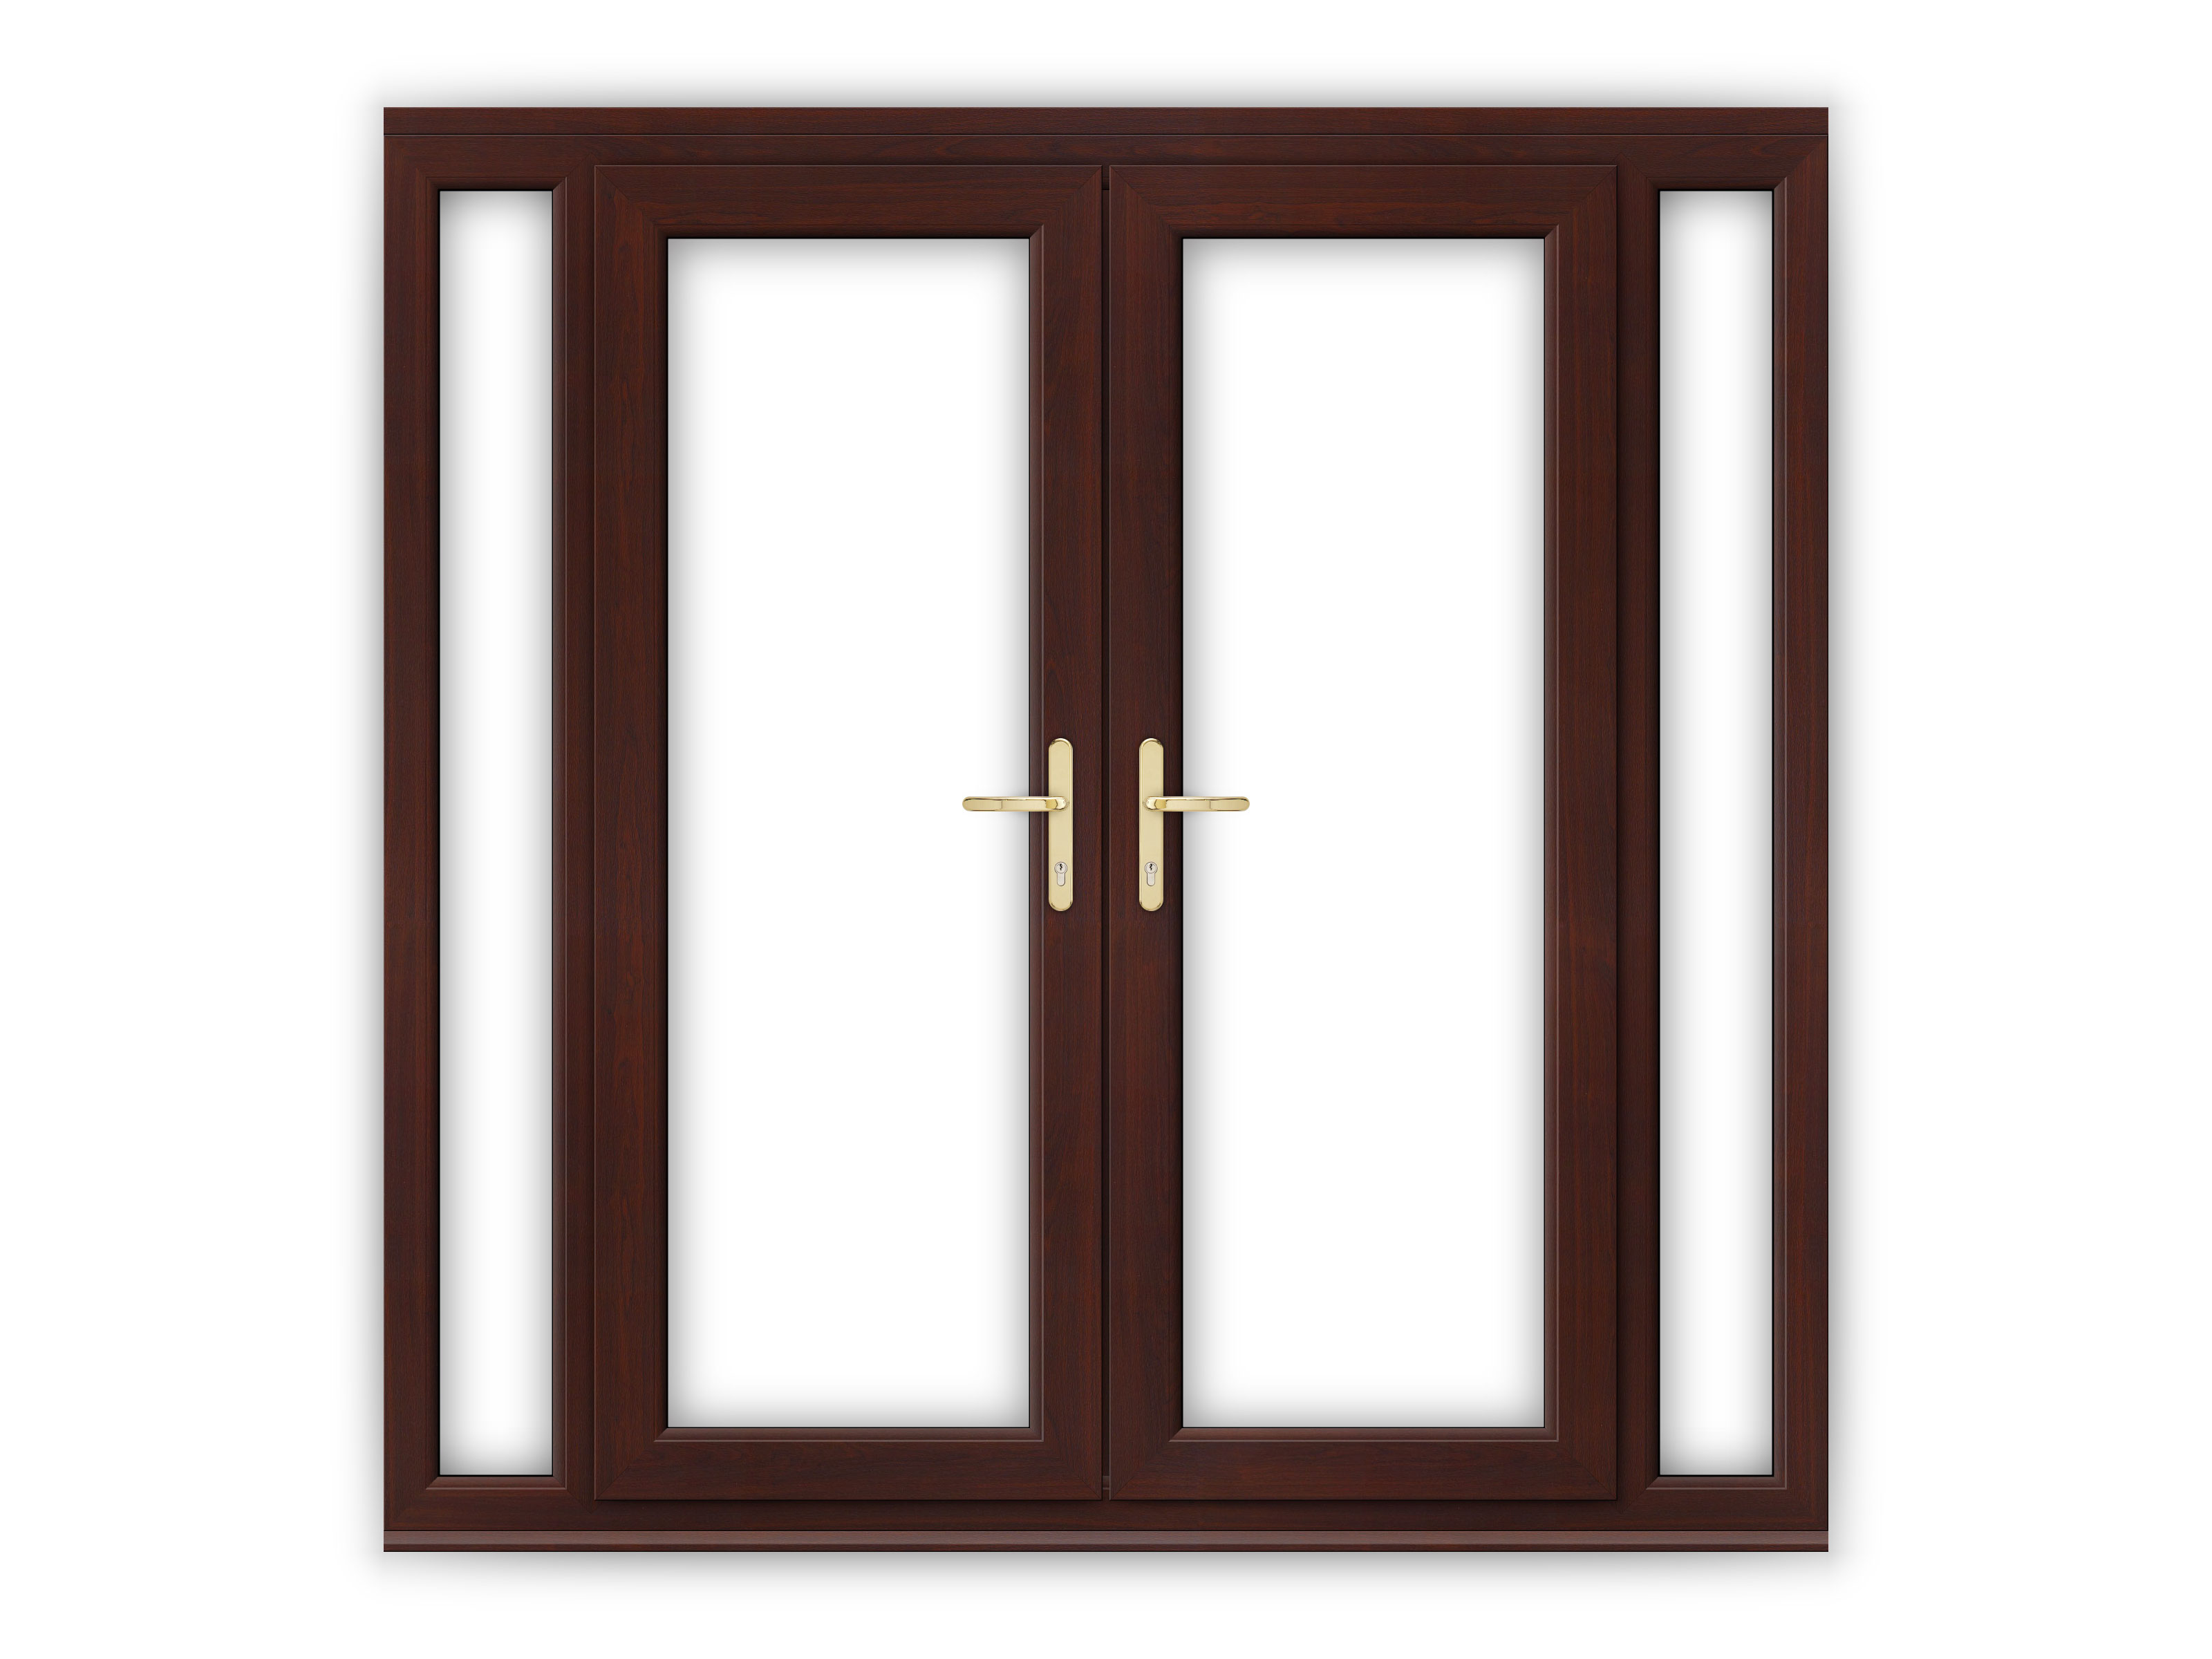 5ft rosewood upvc french doors with narrow side panels for 5 ft french patio doors